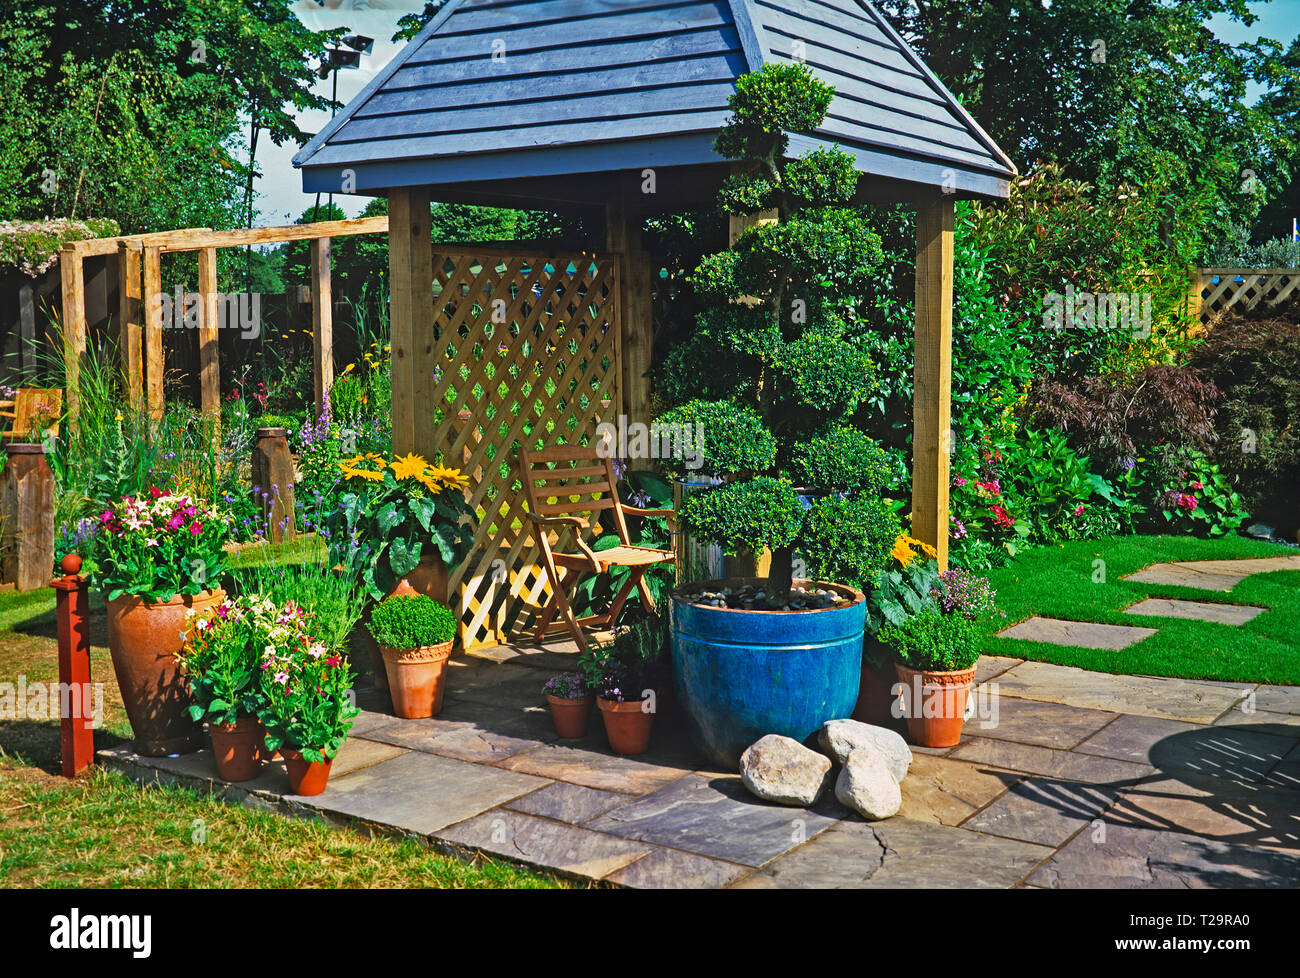 A colourful urban garden with planted containers of flowers and a cloud pruned topiary tree with covered seating area Stock Photo